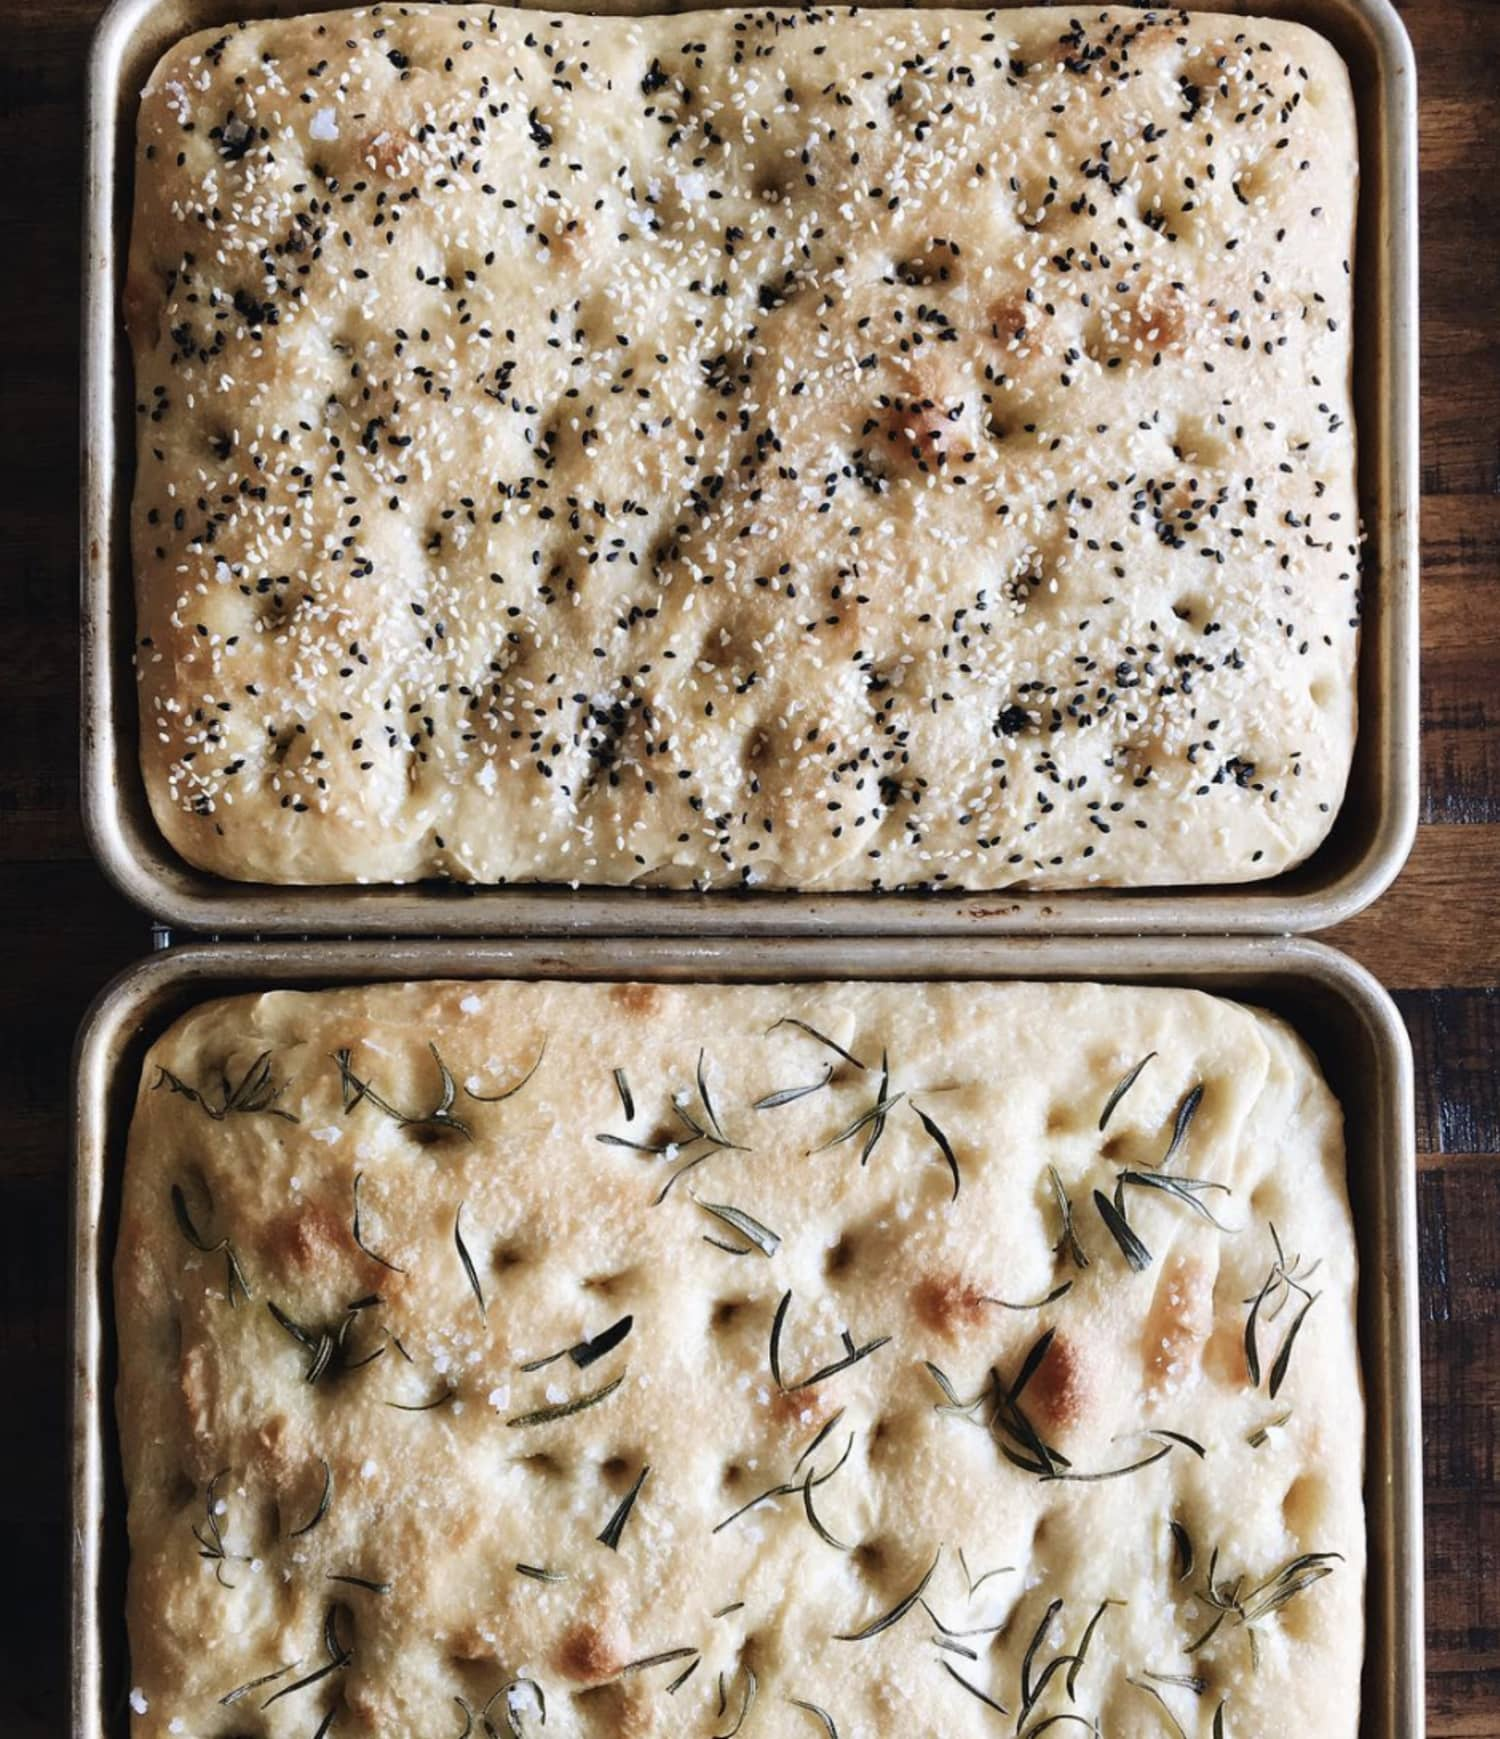 The Pillowy Bread Recipe That I've Baked More than a Dozen Times